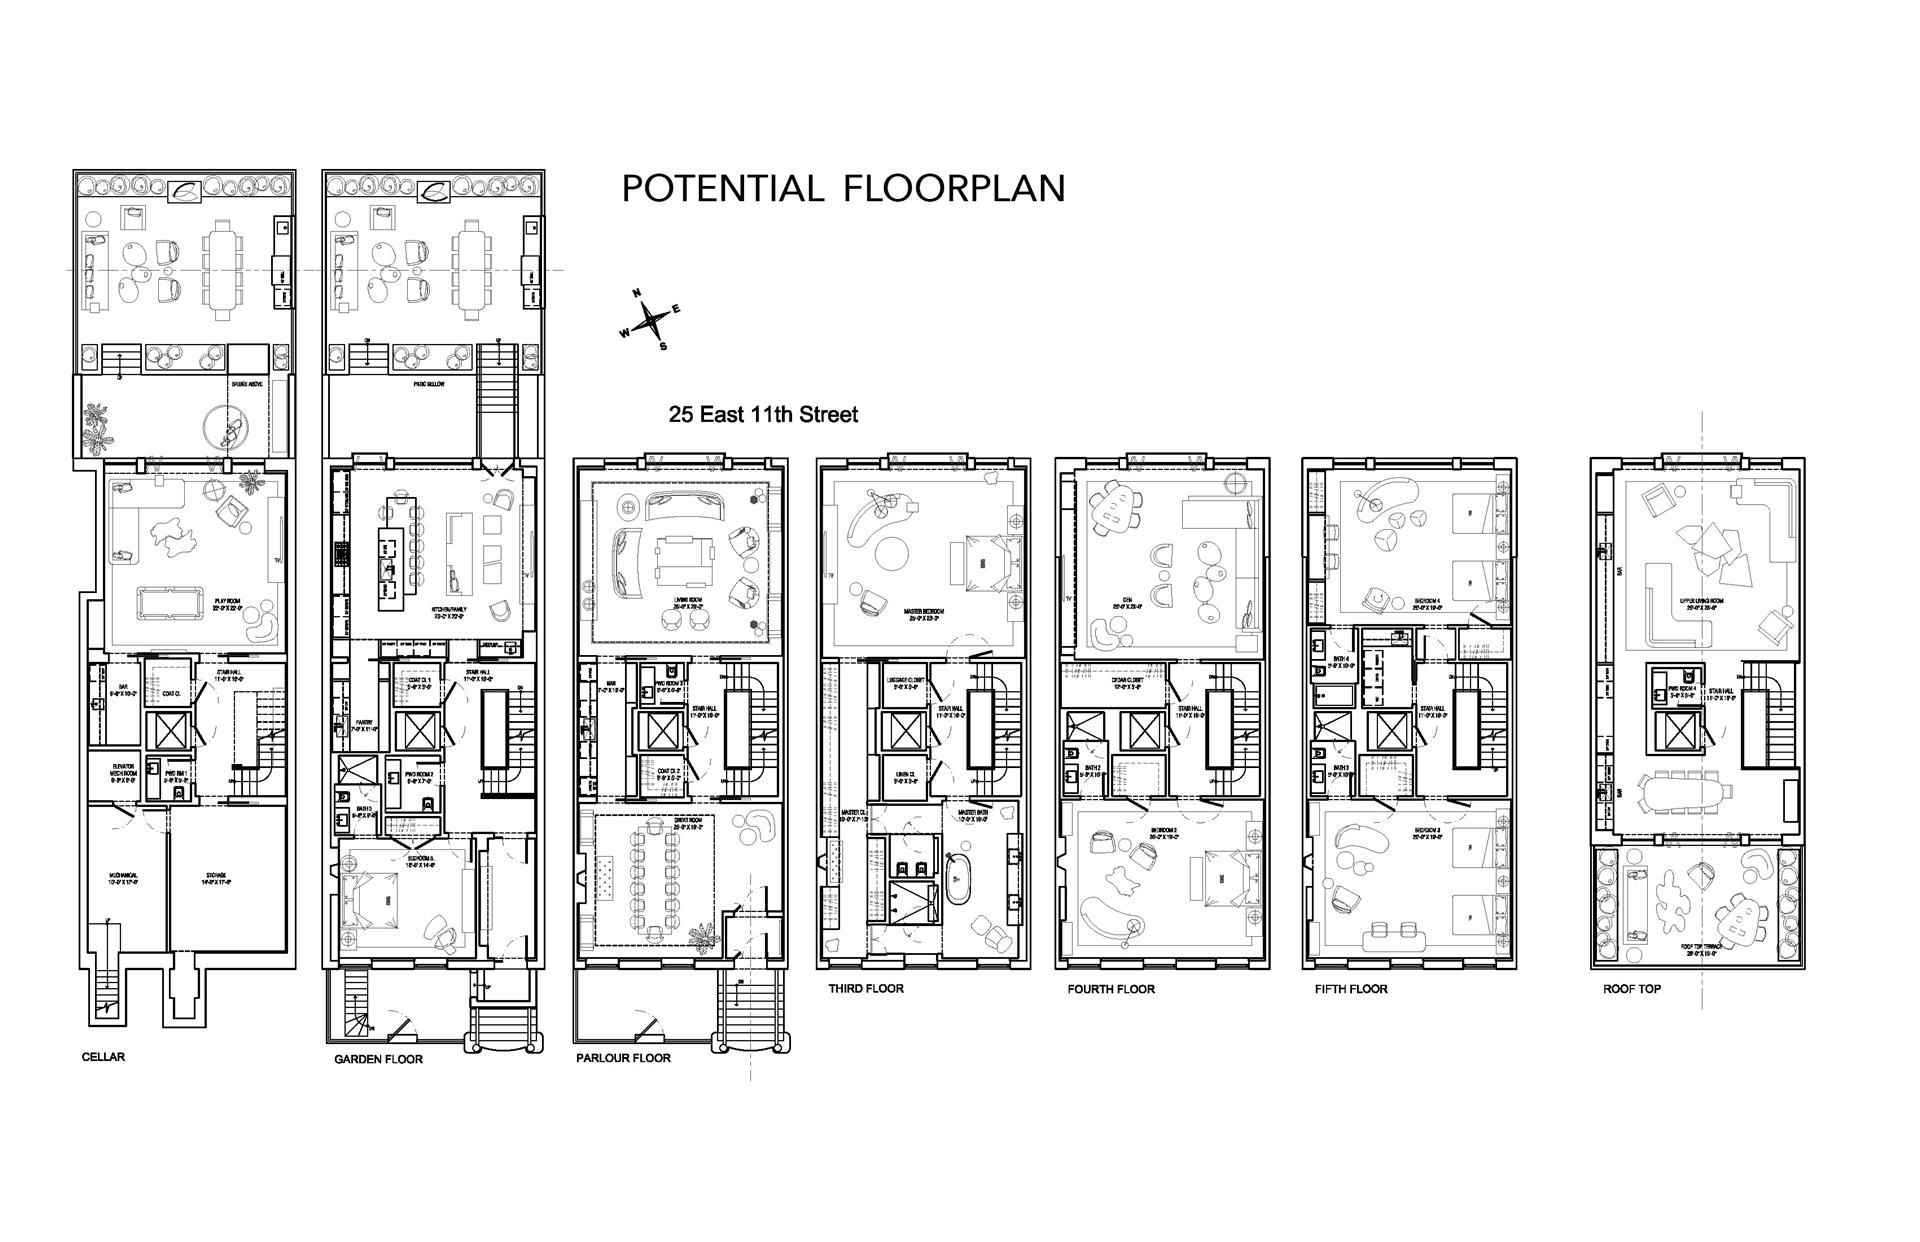 Floor plan of 25 East 11th St - Greenwich Village, New York